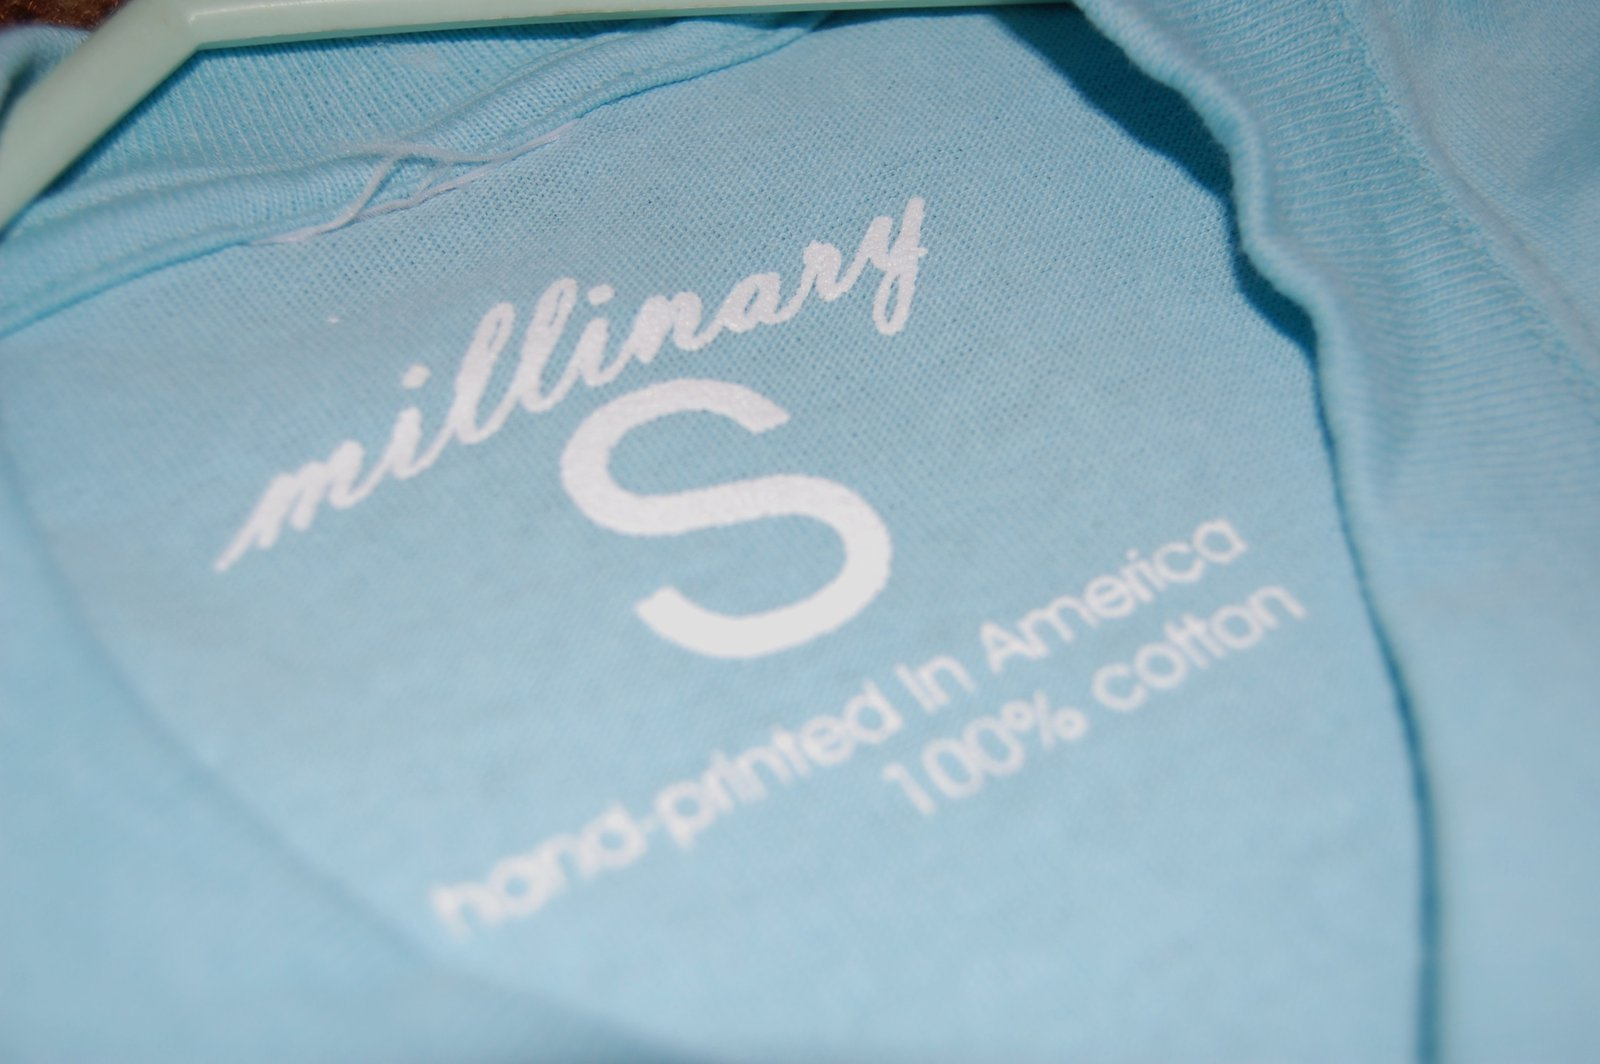 Another shirt tag